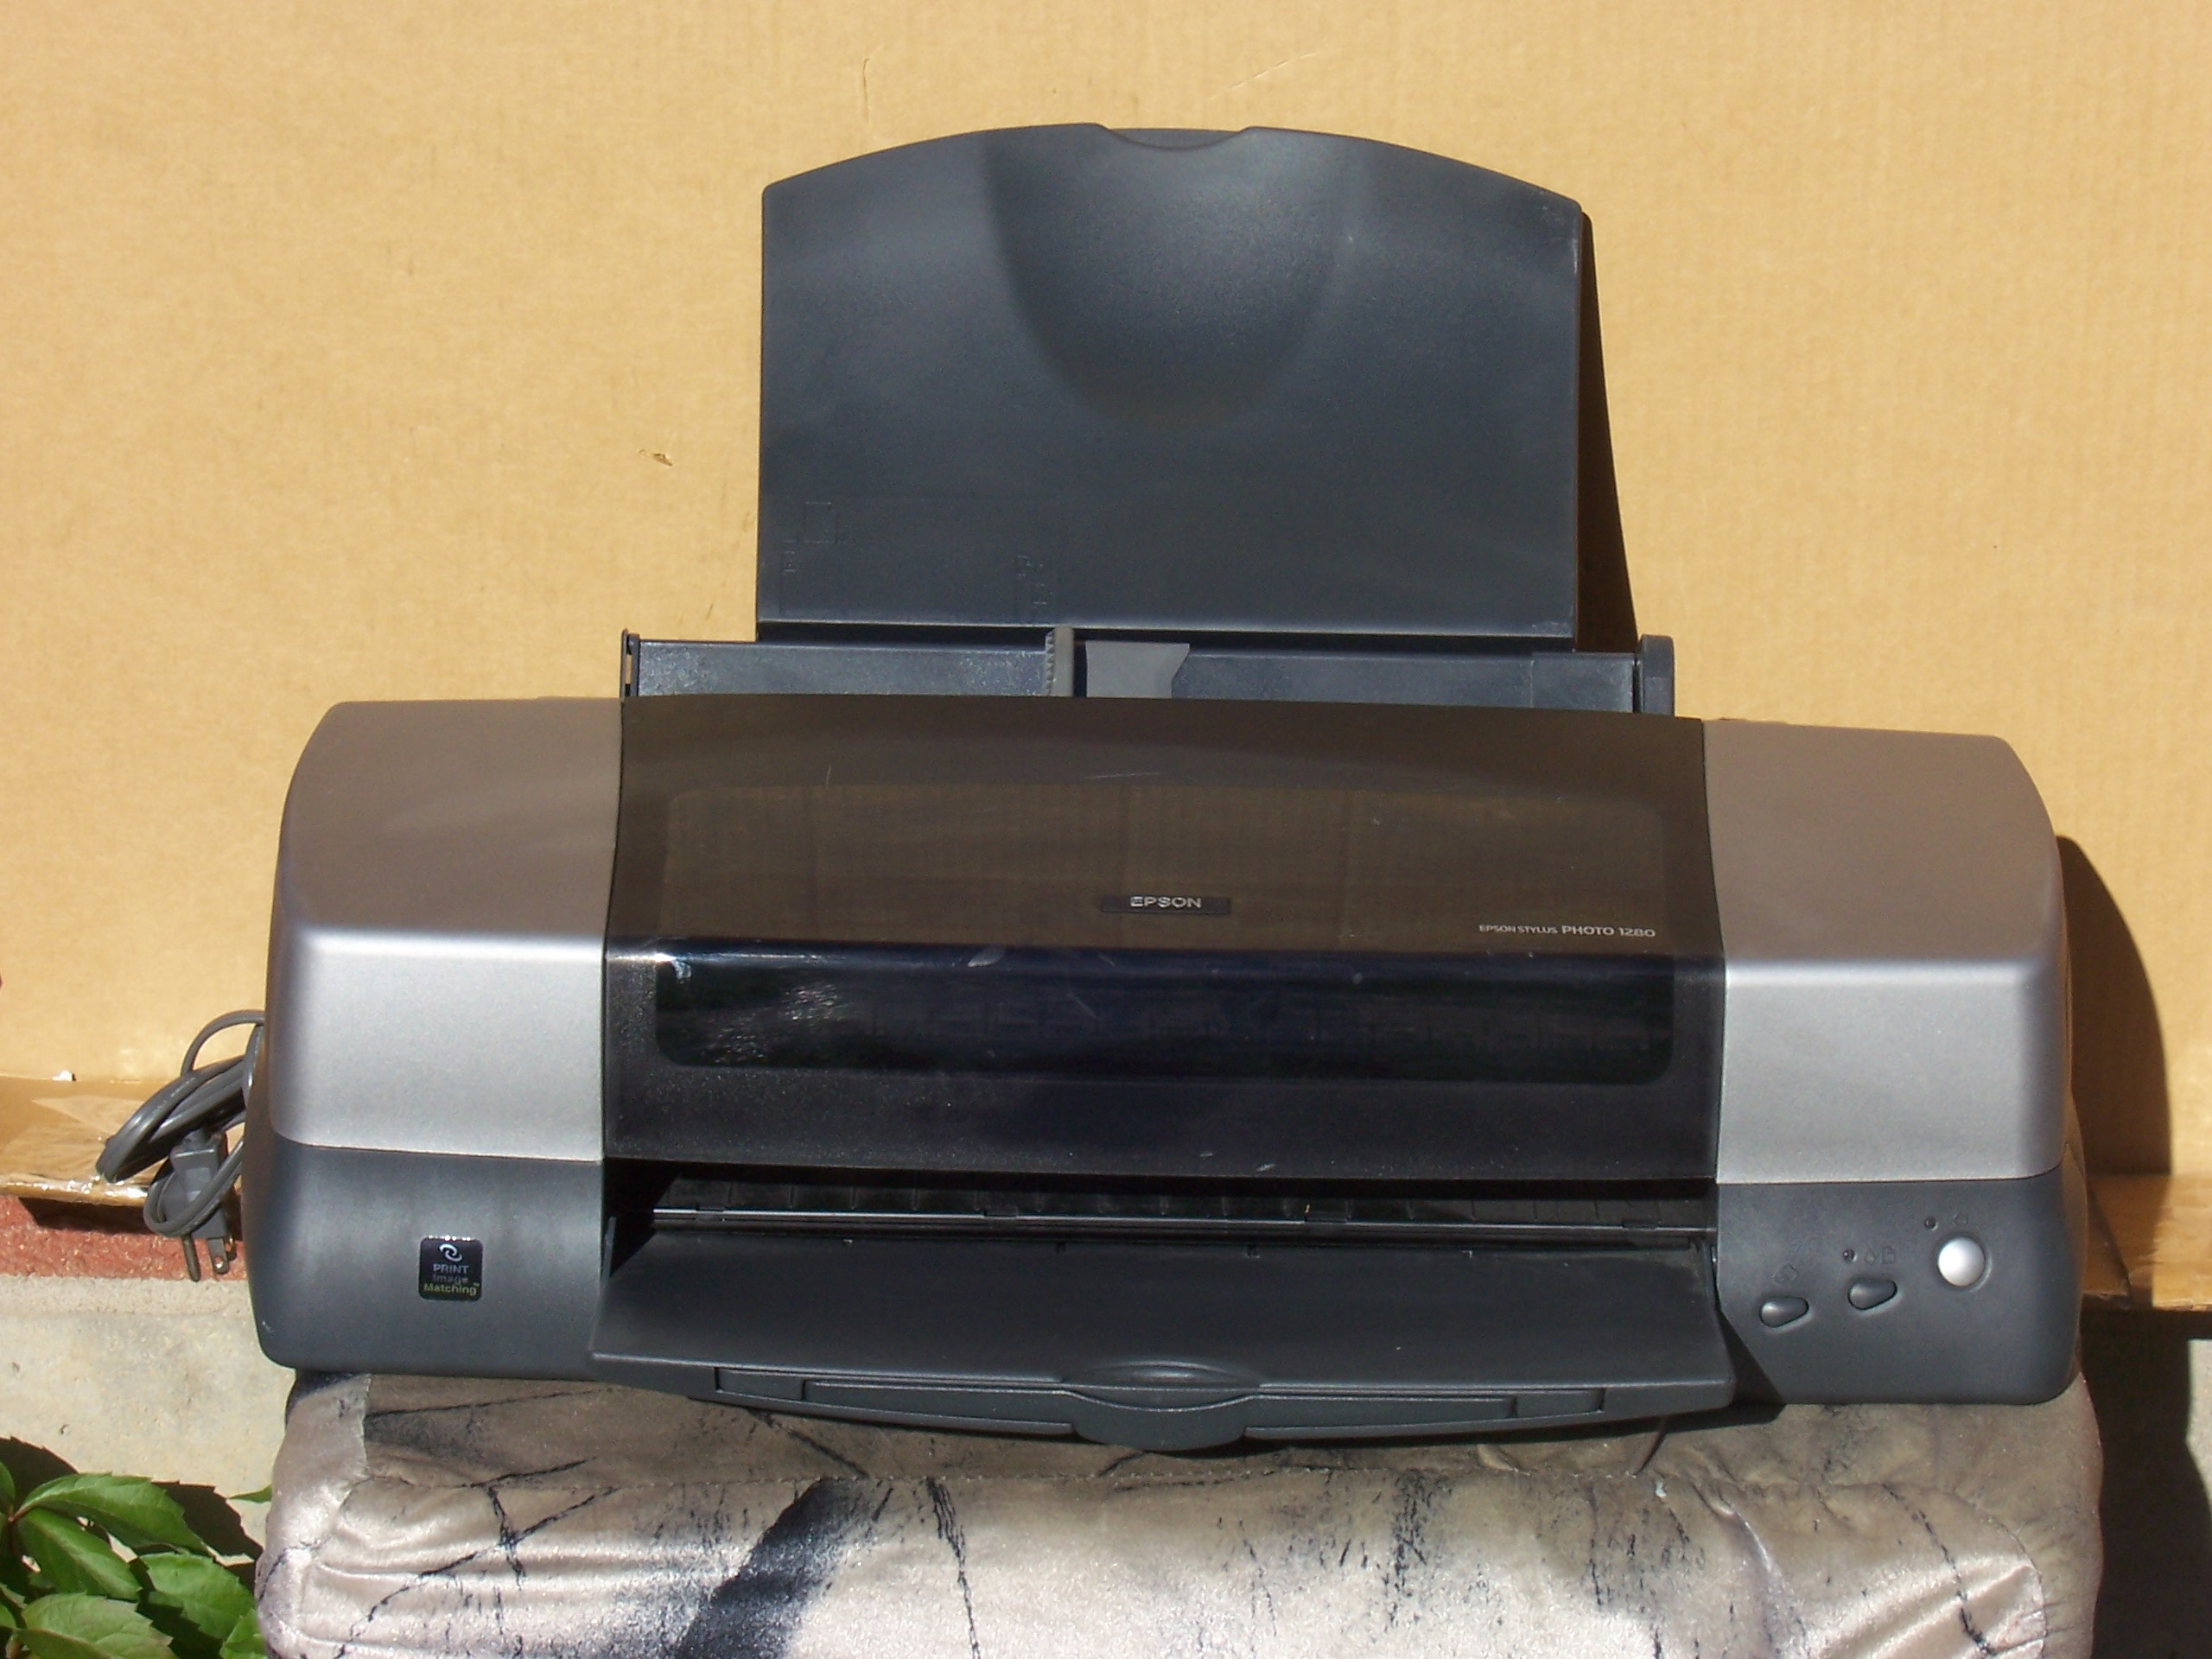 Download Epson Photo 1280 Driver